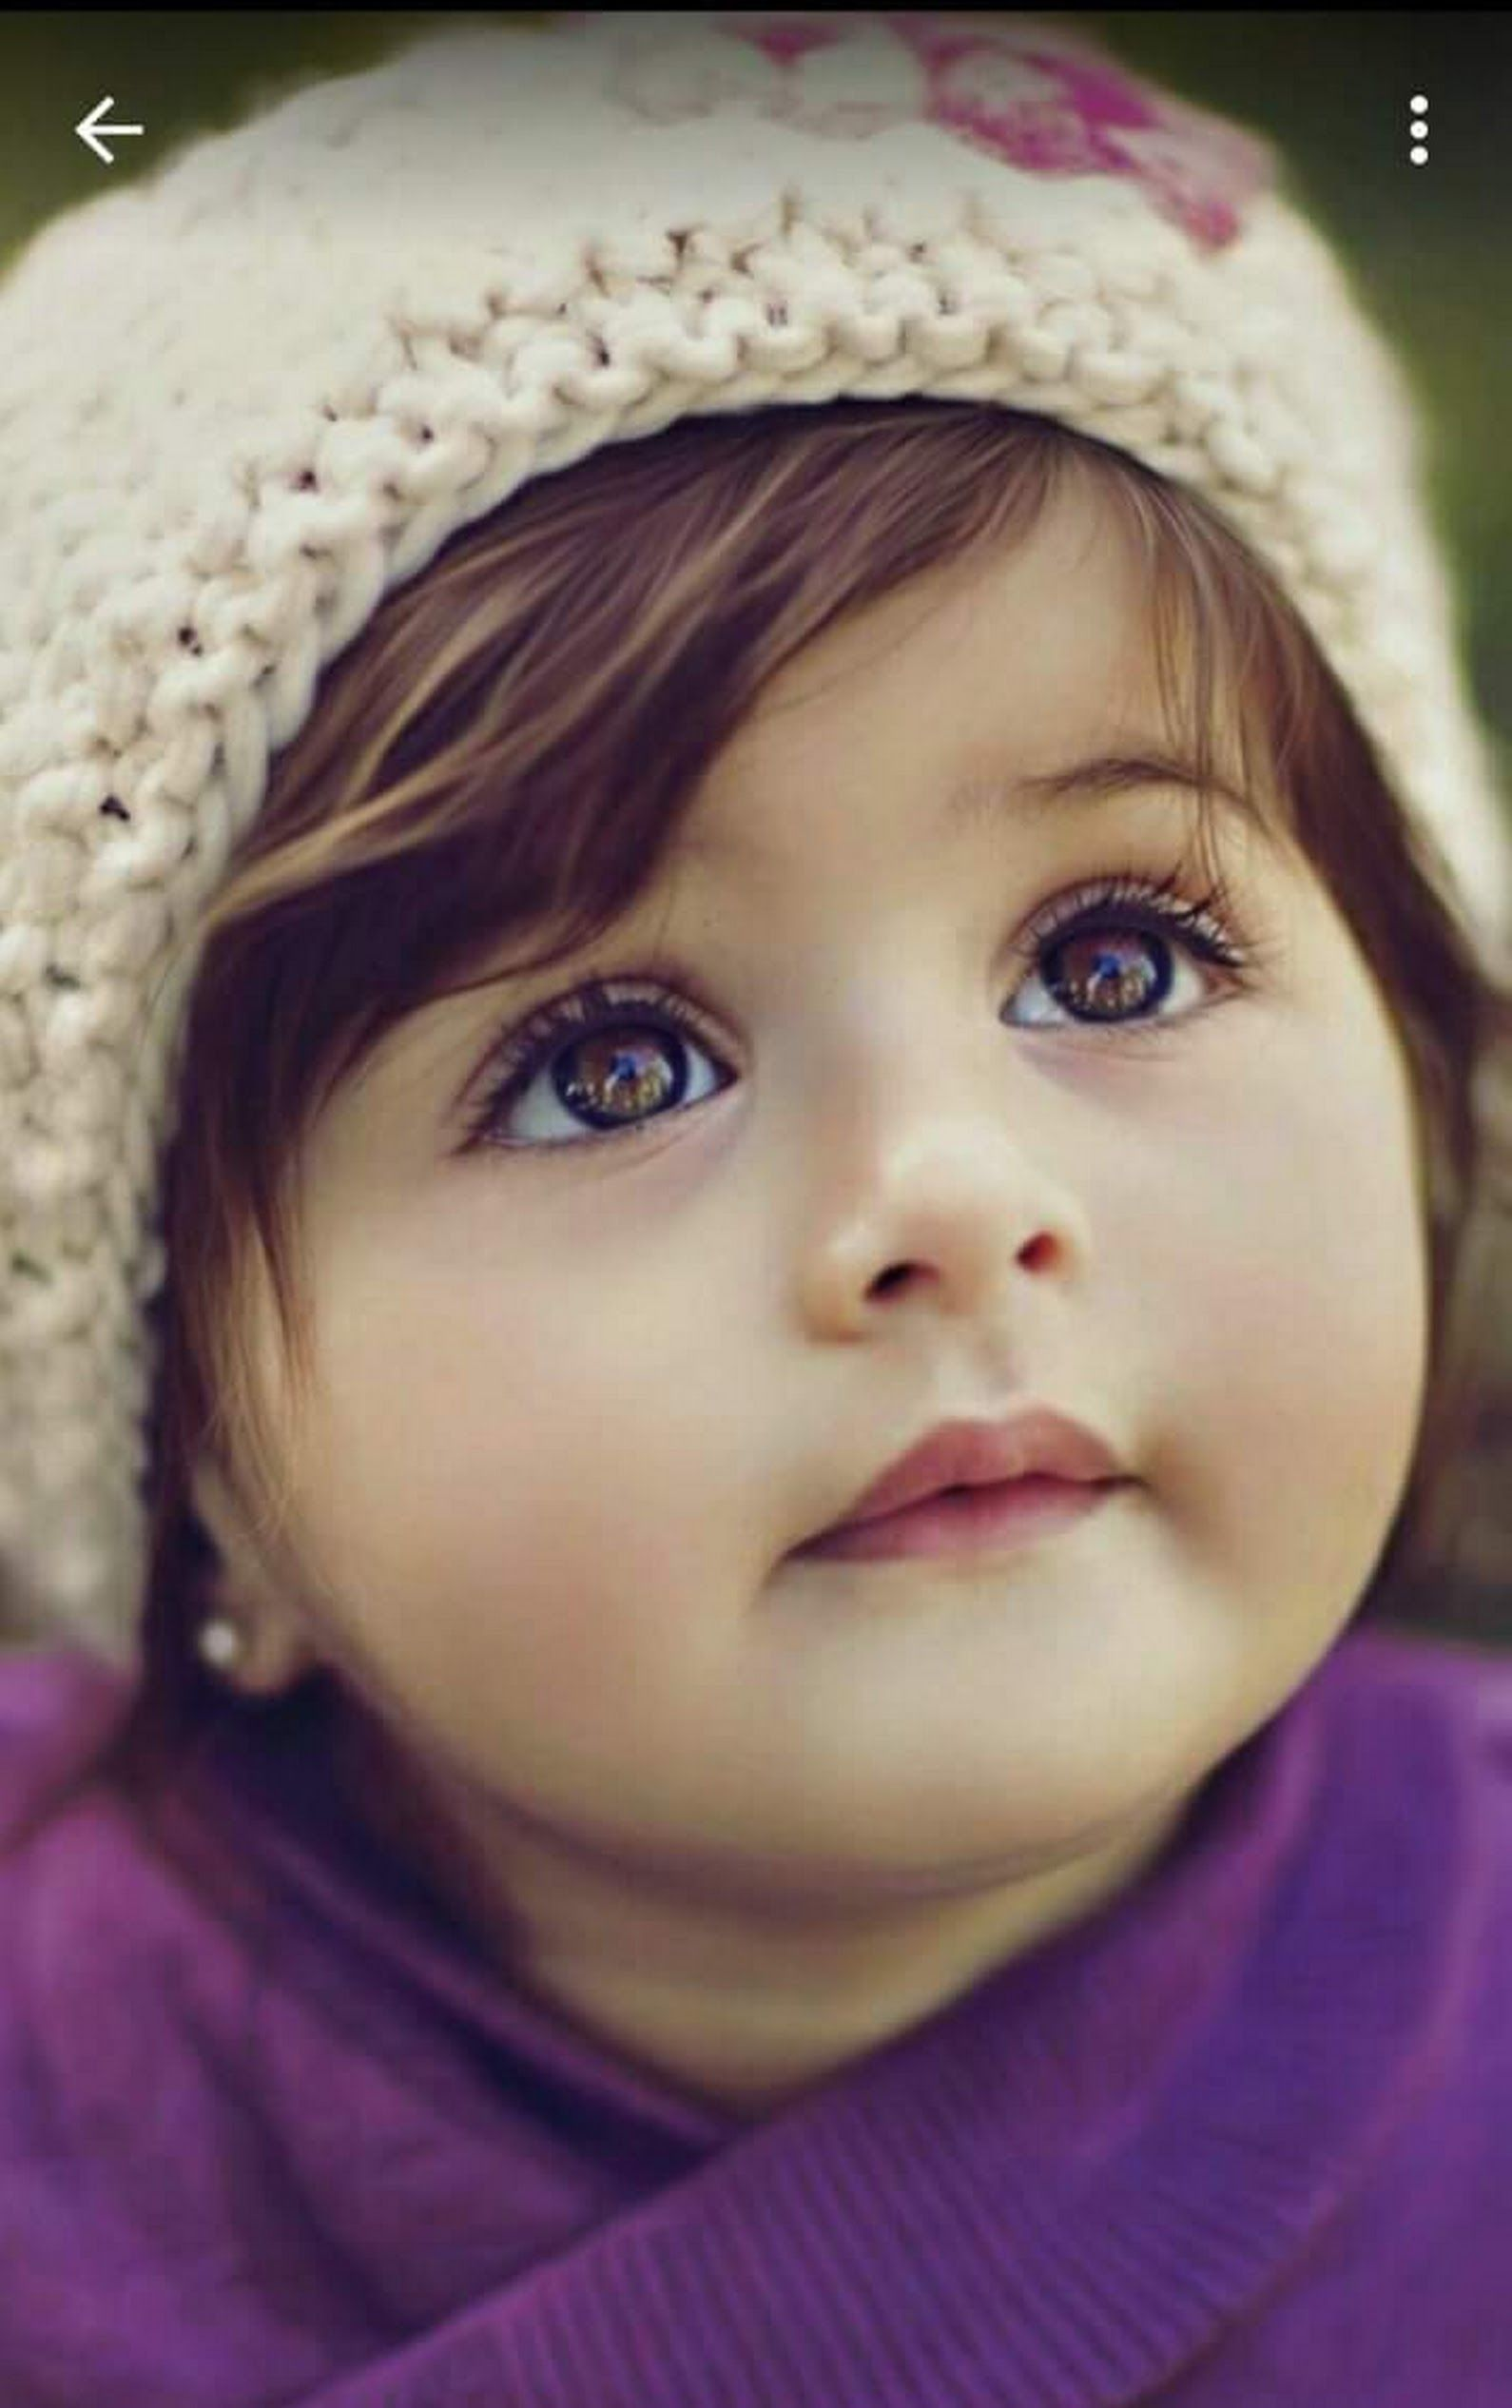 Cute Baby Wallpaper For Mobile Cute Little Baby Girl Cute Baby Boy Images Cute Baby Girl Pictures